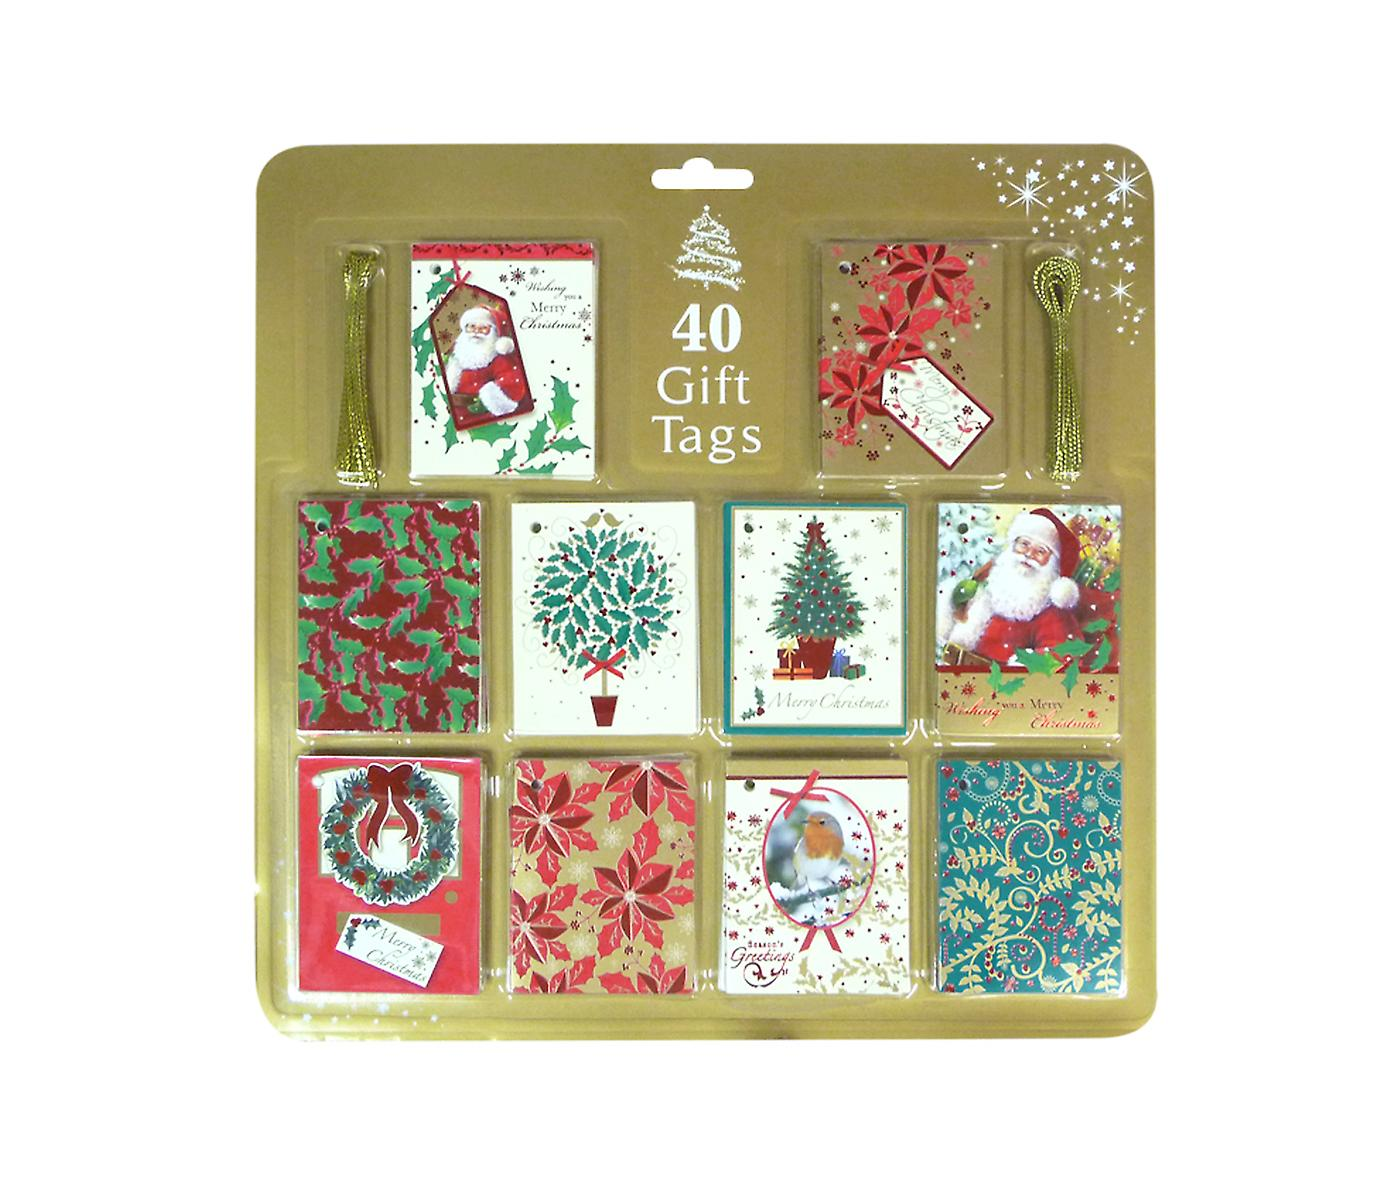 40 Christmas Gift Tags in Assorted Gold and Red Seasonal Designs